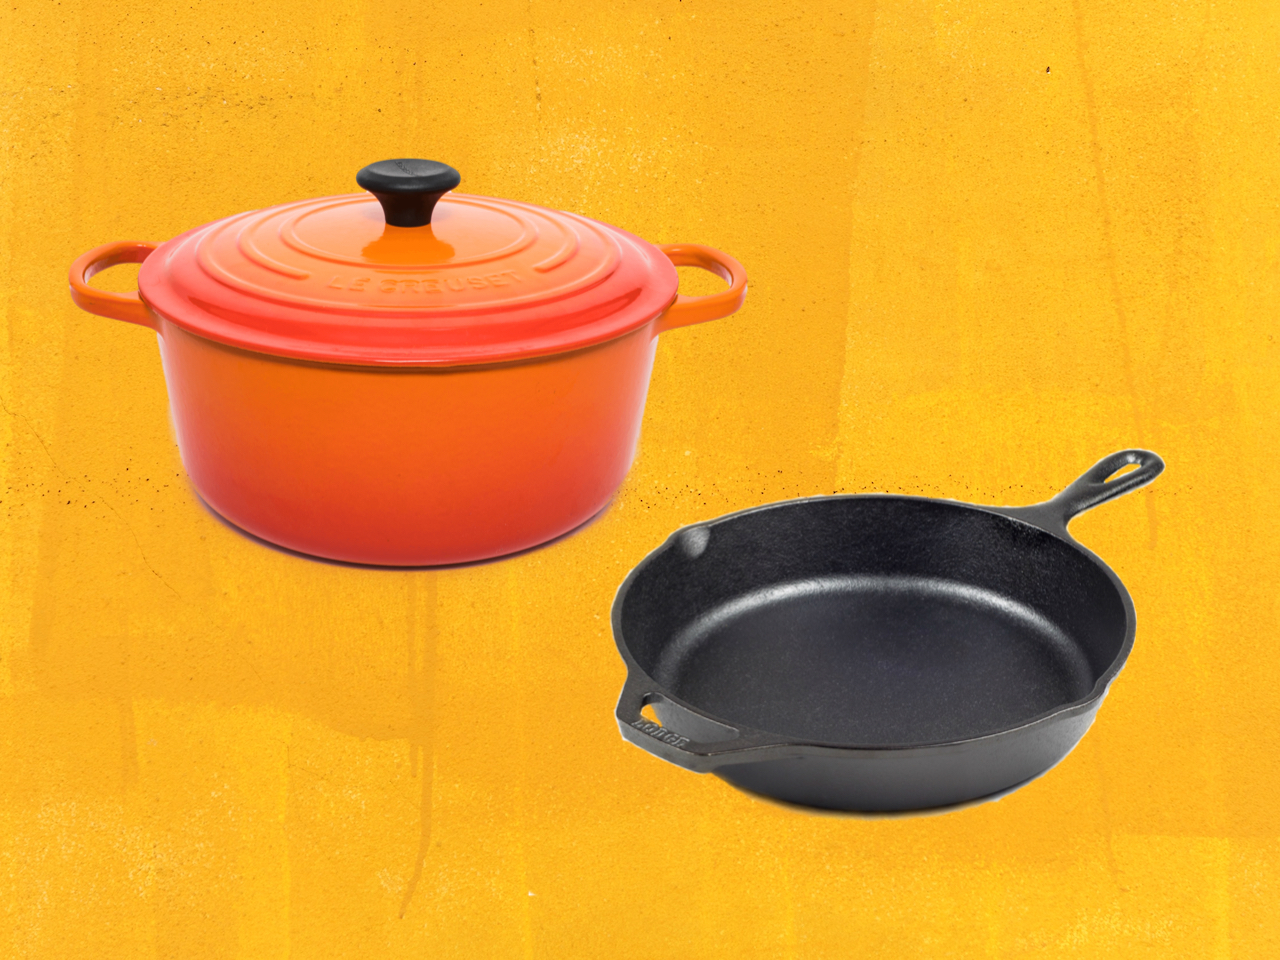 enameled cast iron dutch oven and cast iron skillet on yellow background